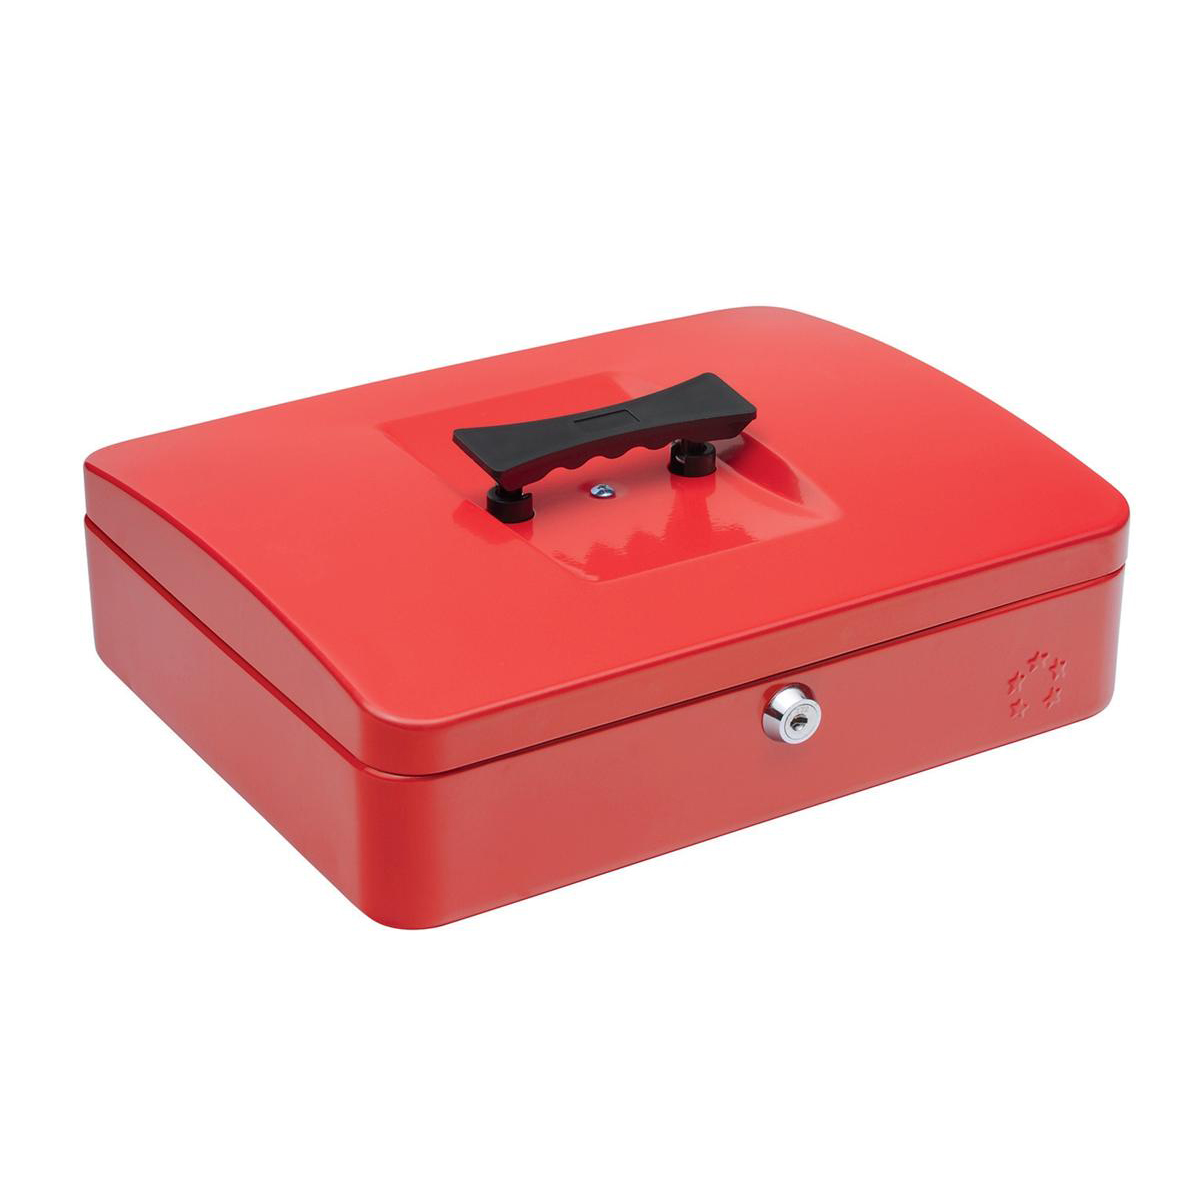 Cash 5 Star Facilities Cash Box with 5-compartment Tray Steel Spring Lock 12 Inch W300xD240xH70mm Red